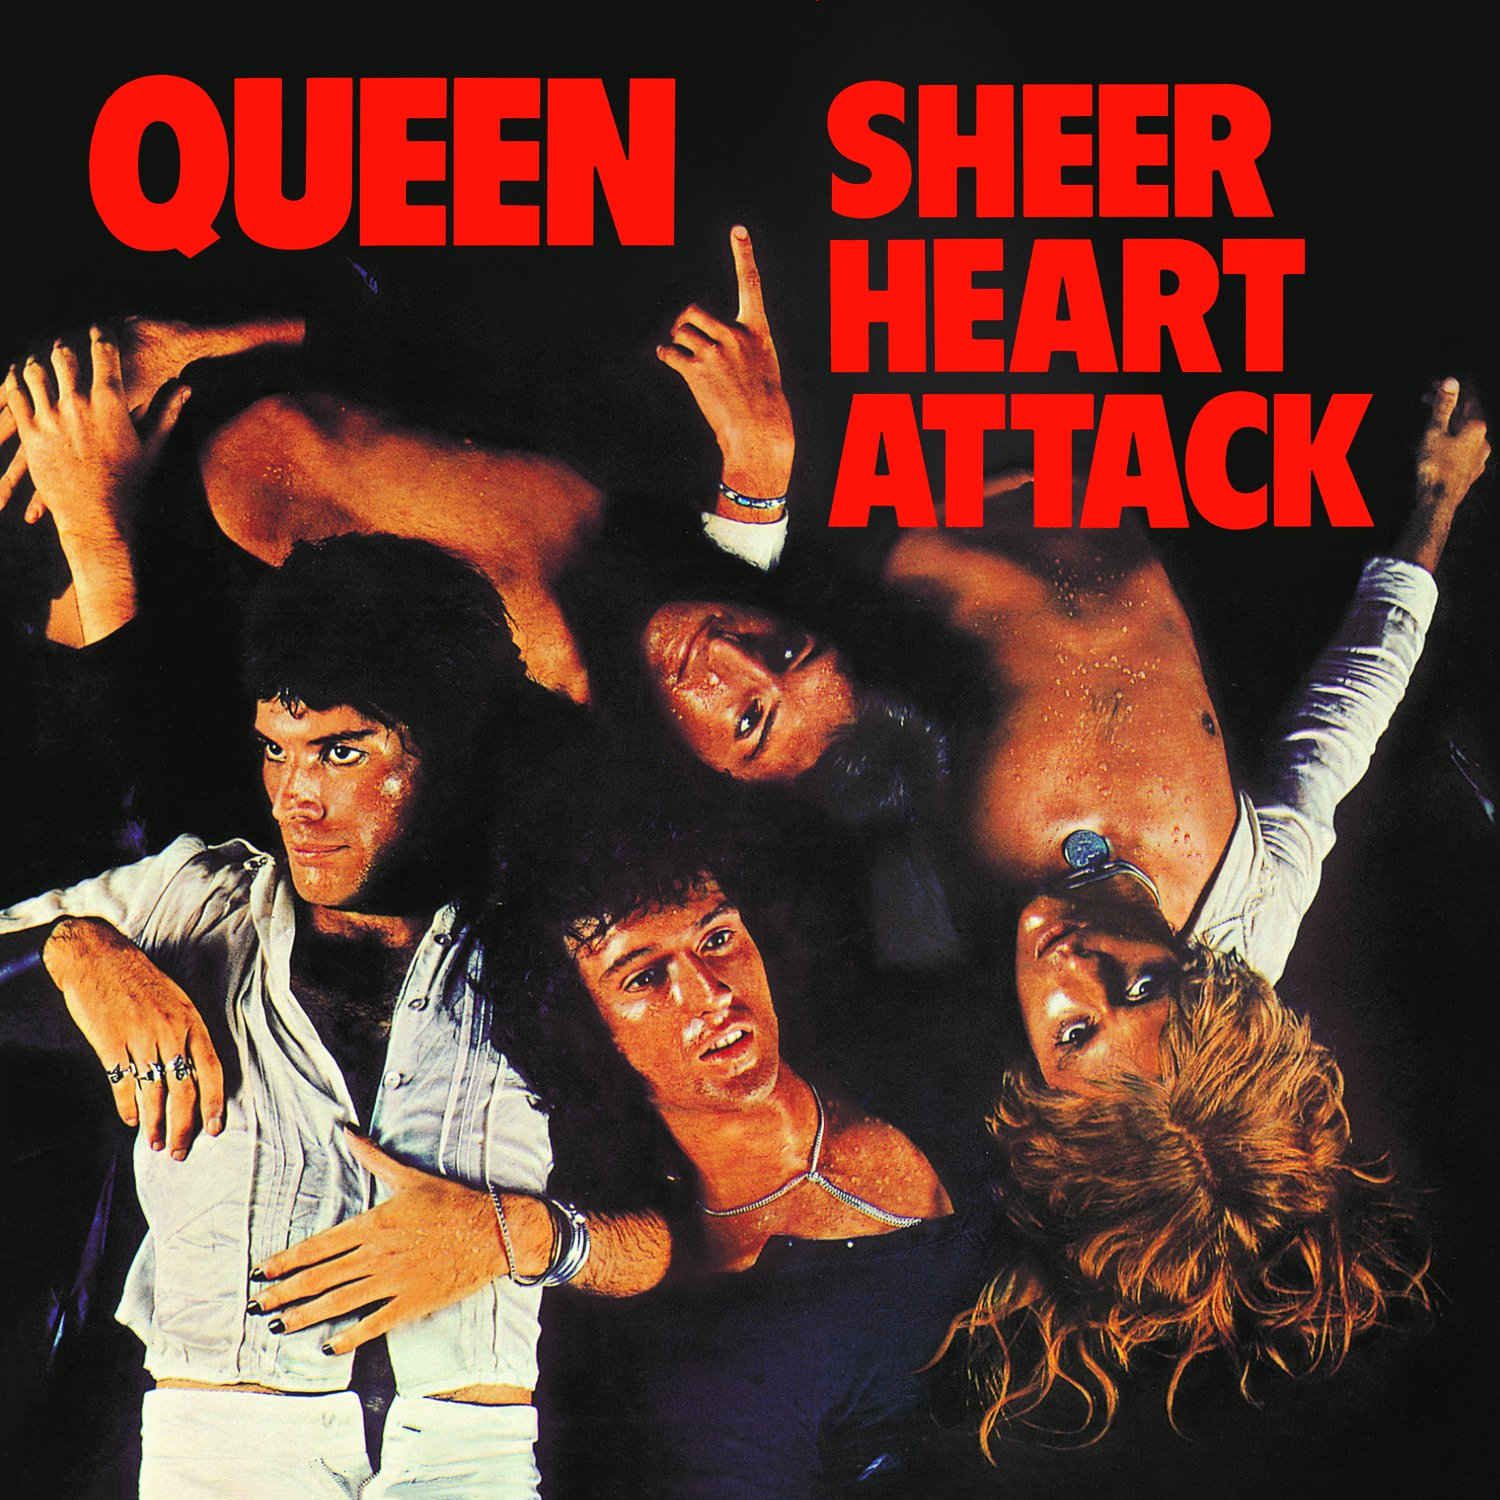 It's Only Heart Attack 81yPO6qUD7L._SL1500_